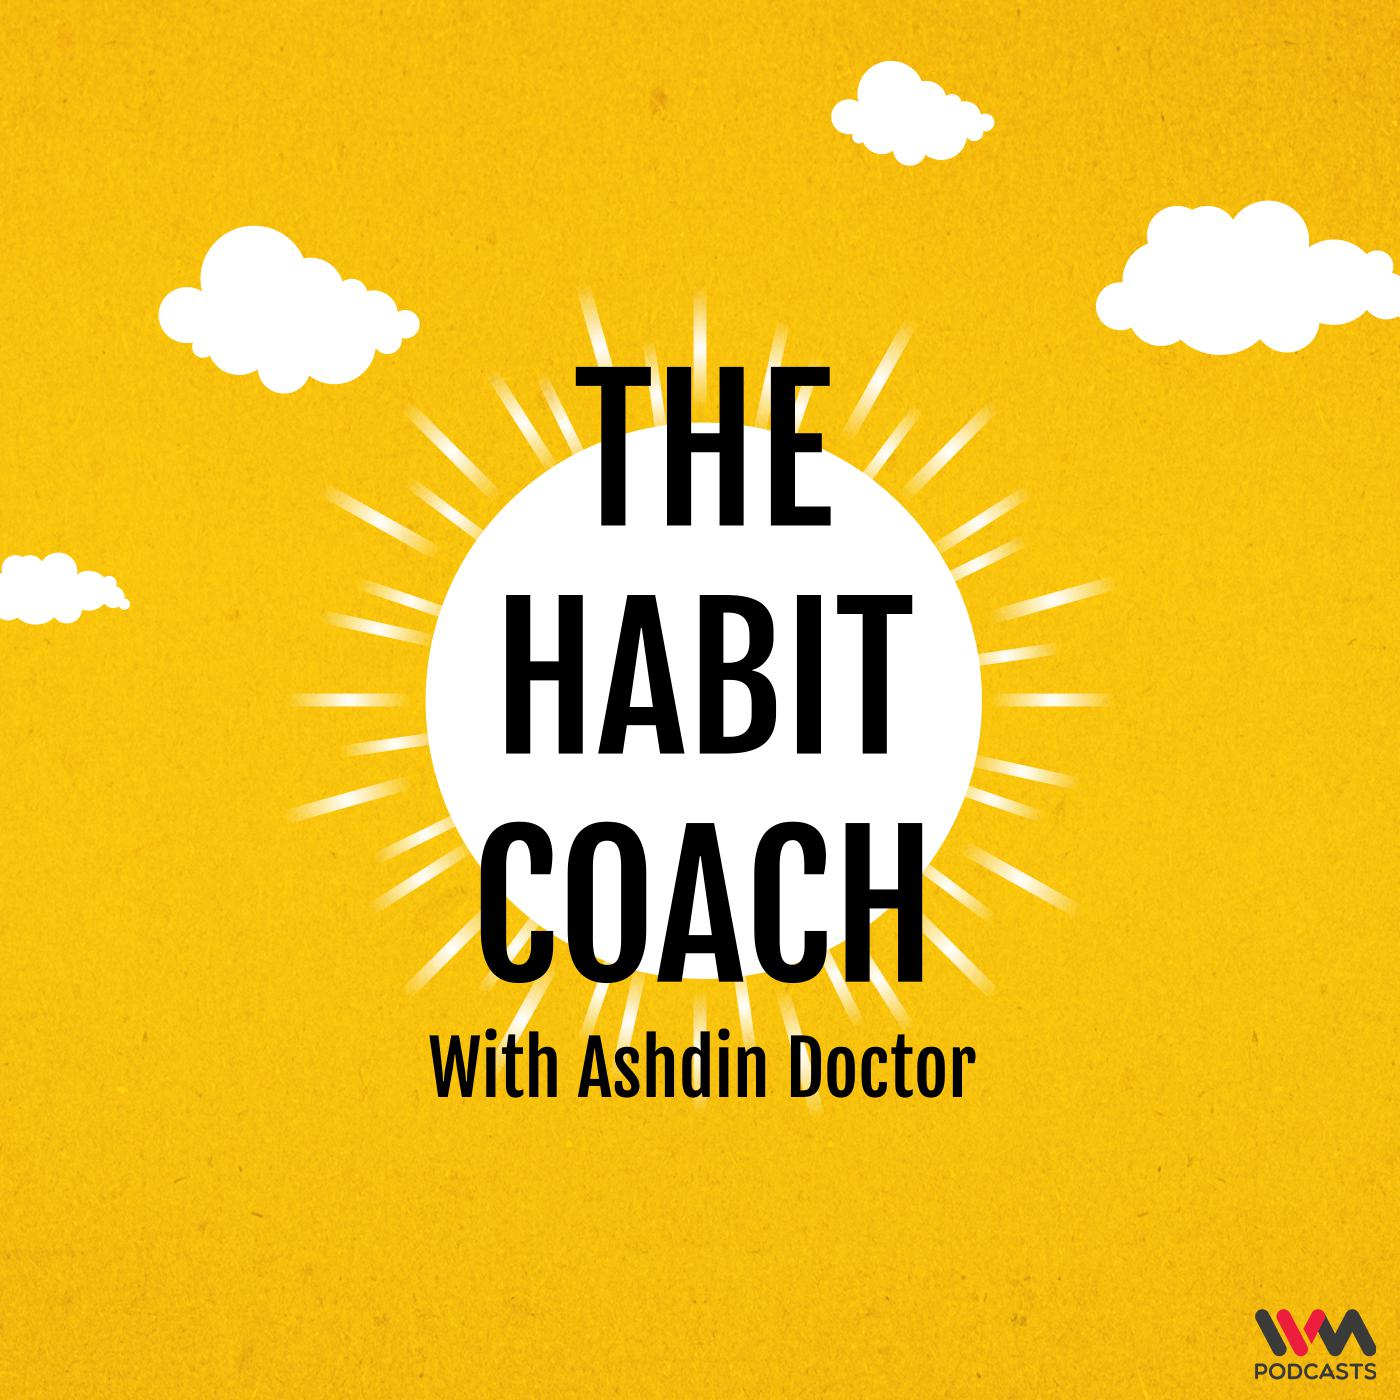 The Habit Coach with Ashdin Doctor podcast